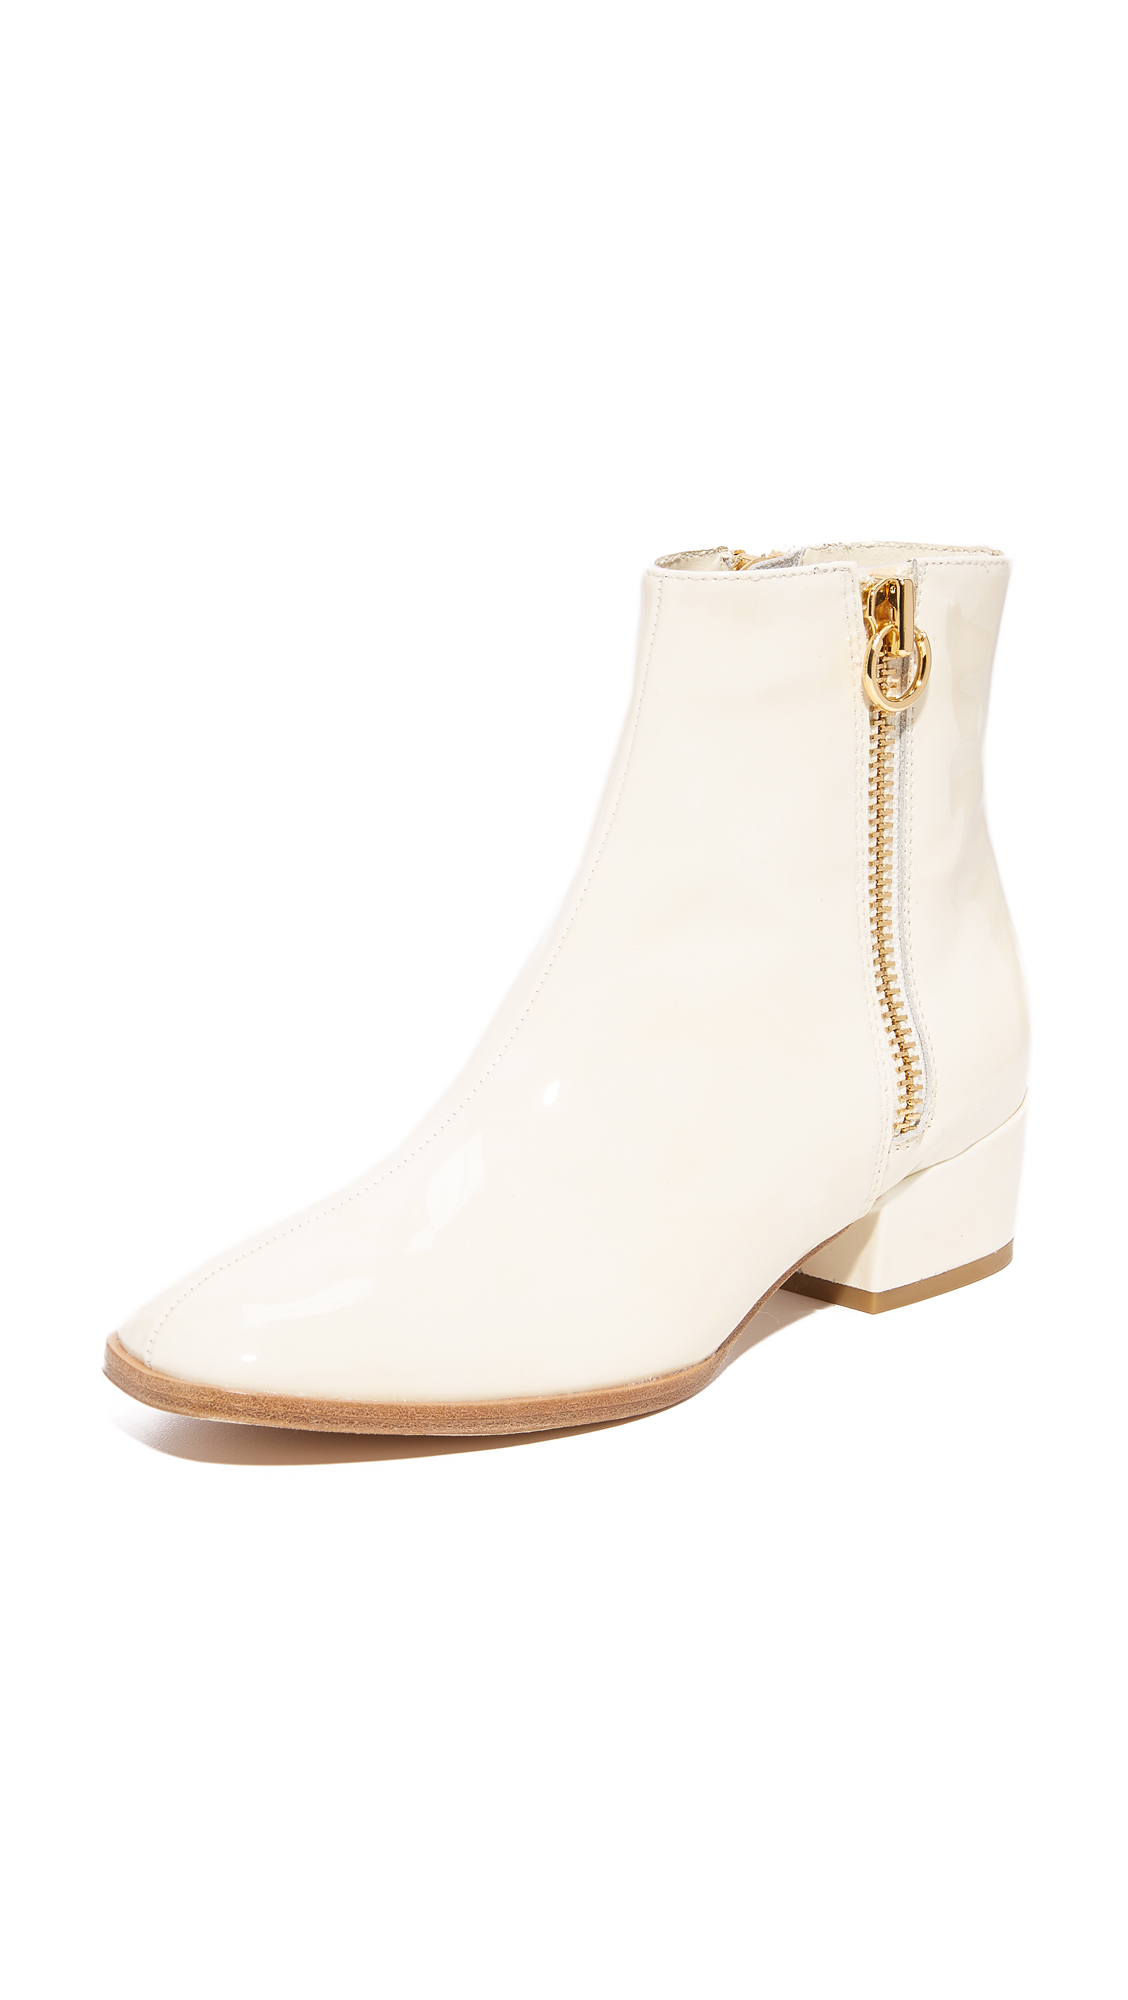 Joie Rubee Booties - Latte